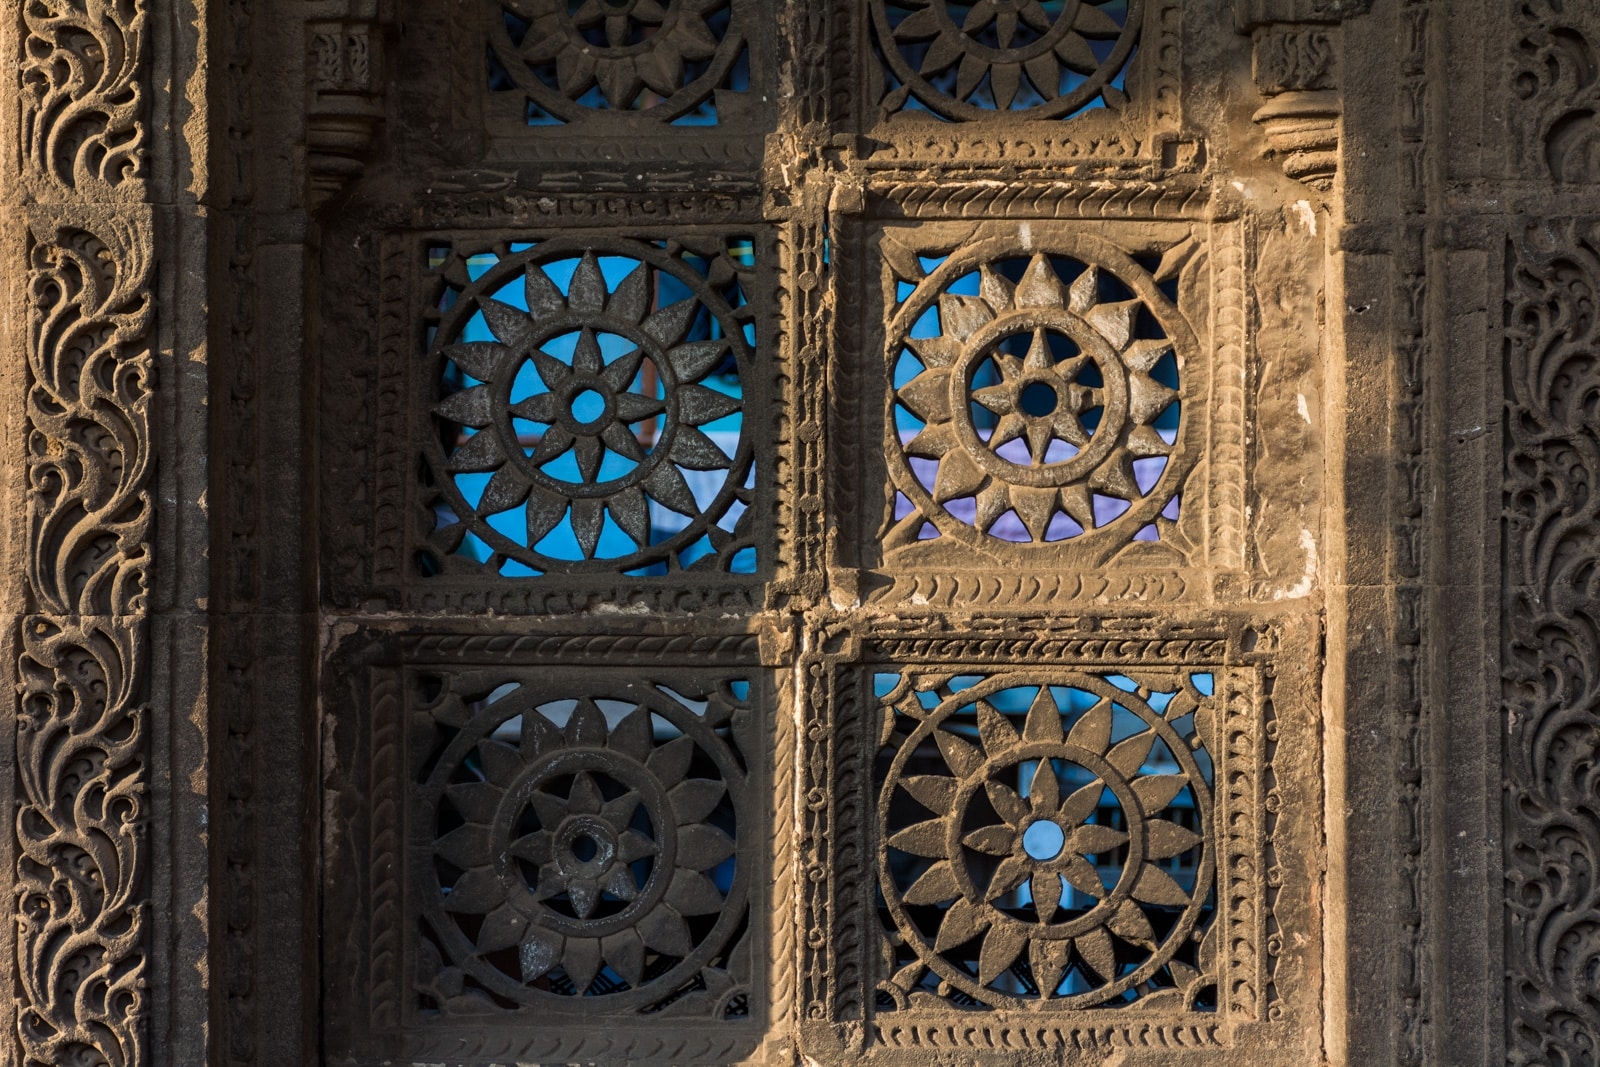 Lattice window carving at Sidi Saeed Mosque